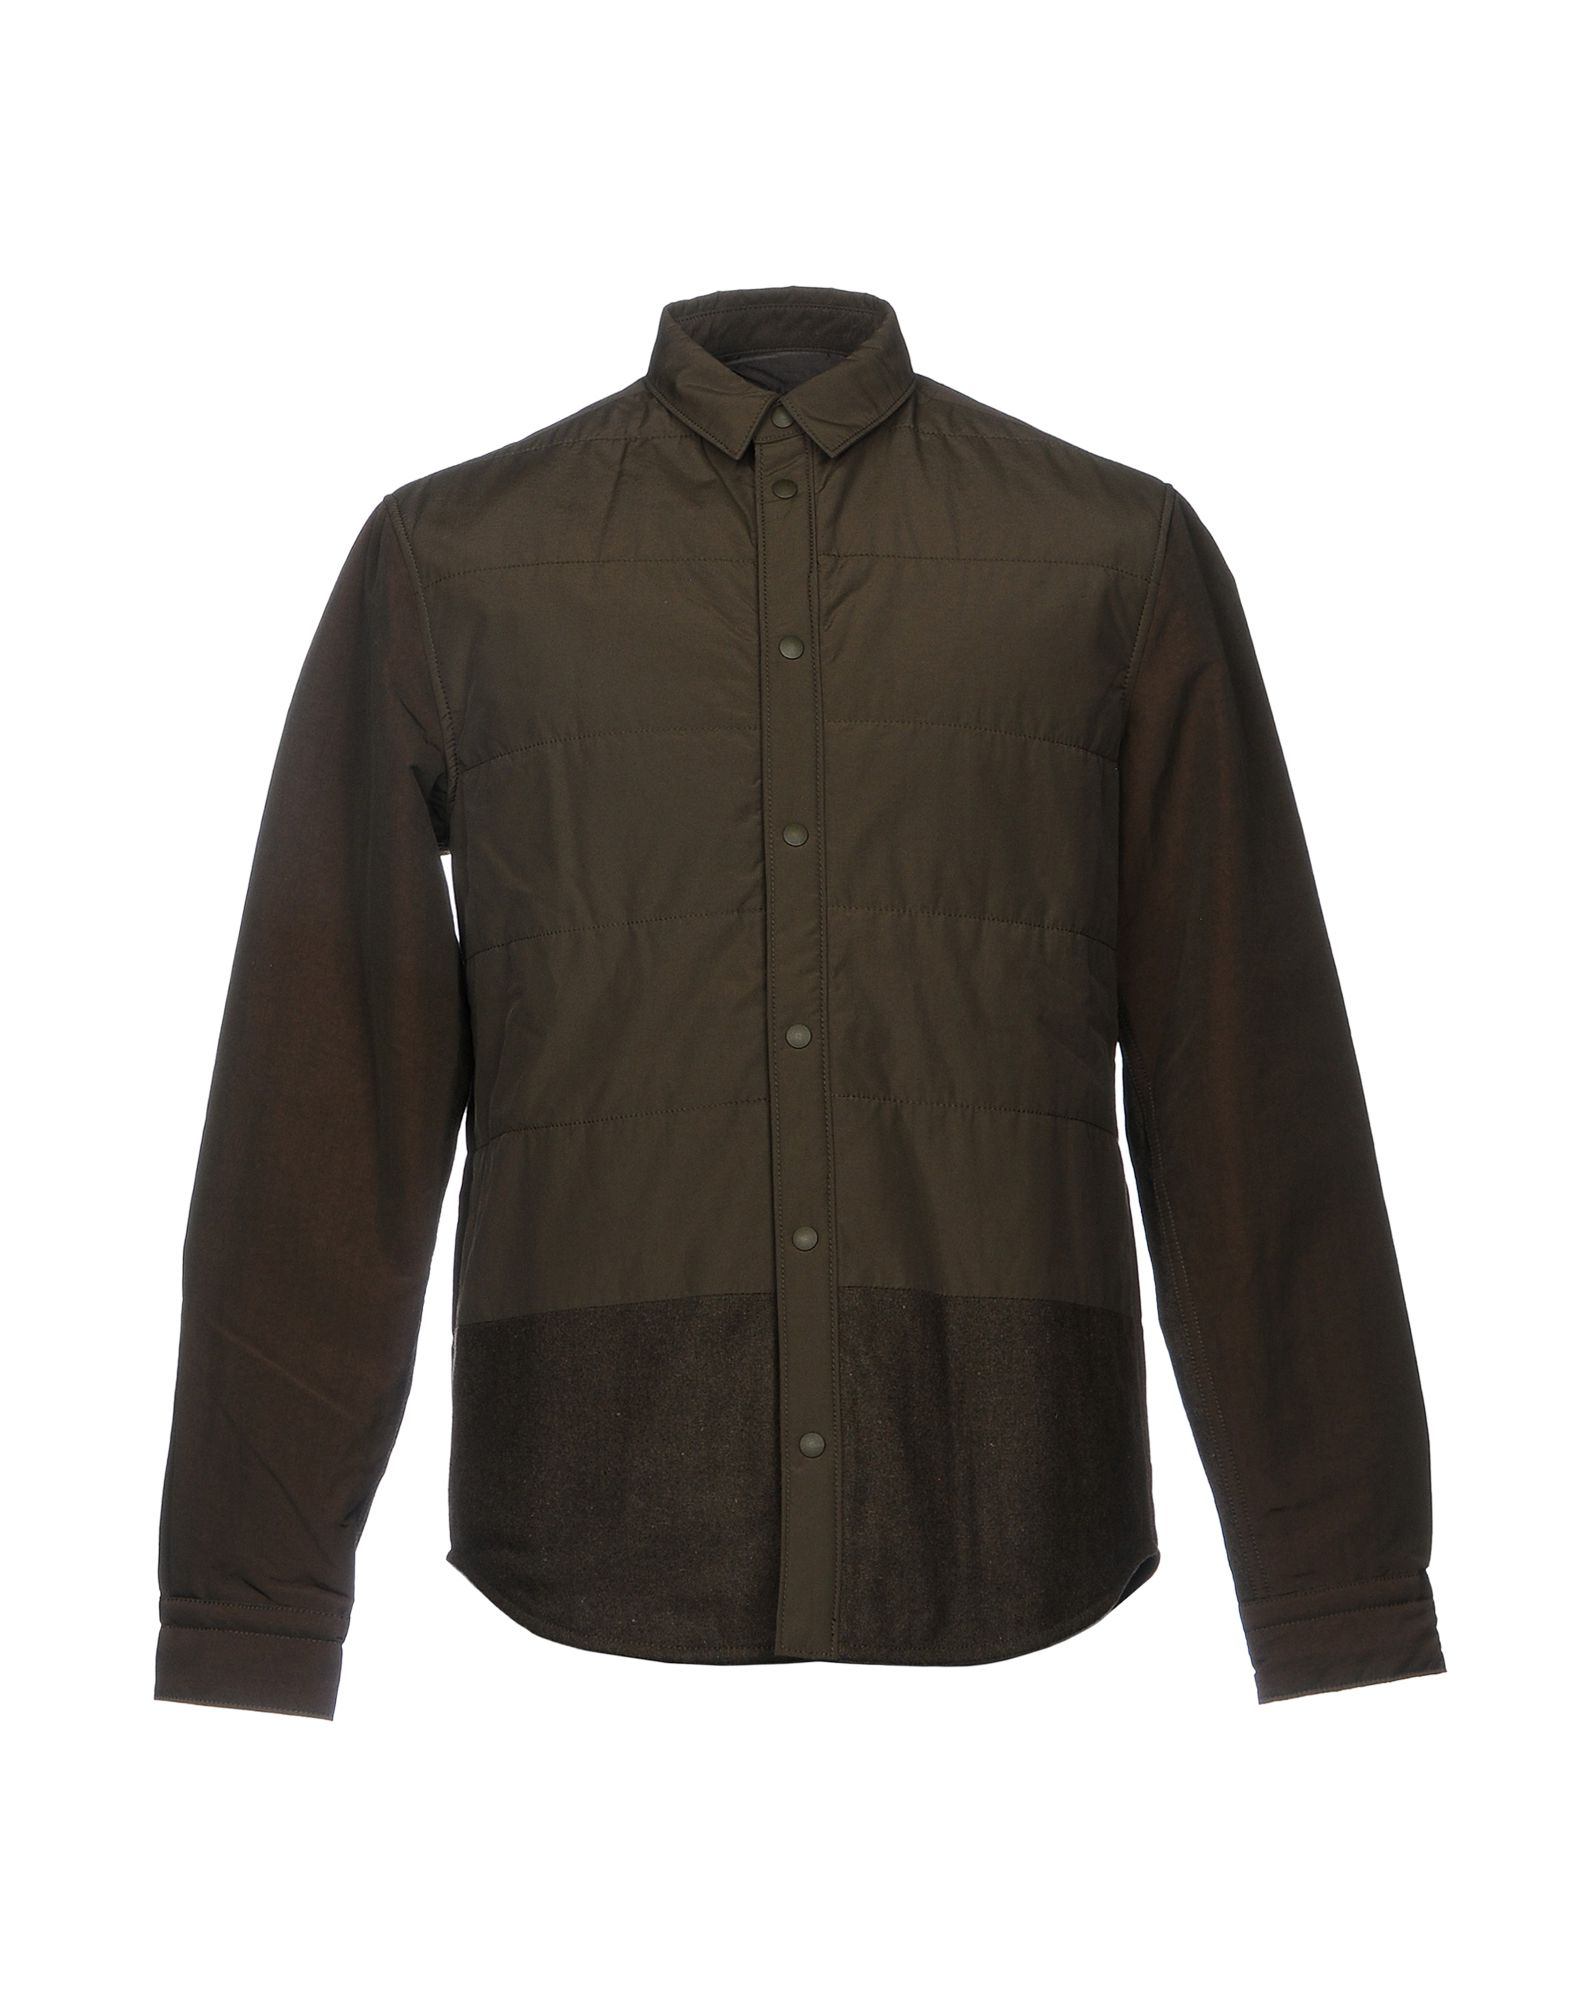 PLAC Jacket in Military Green